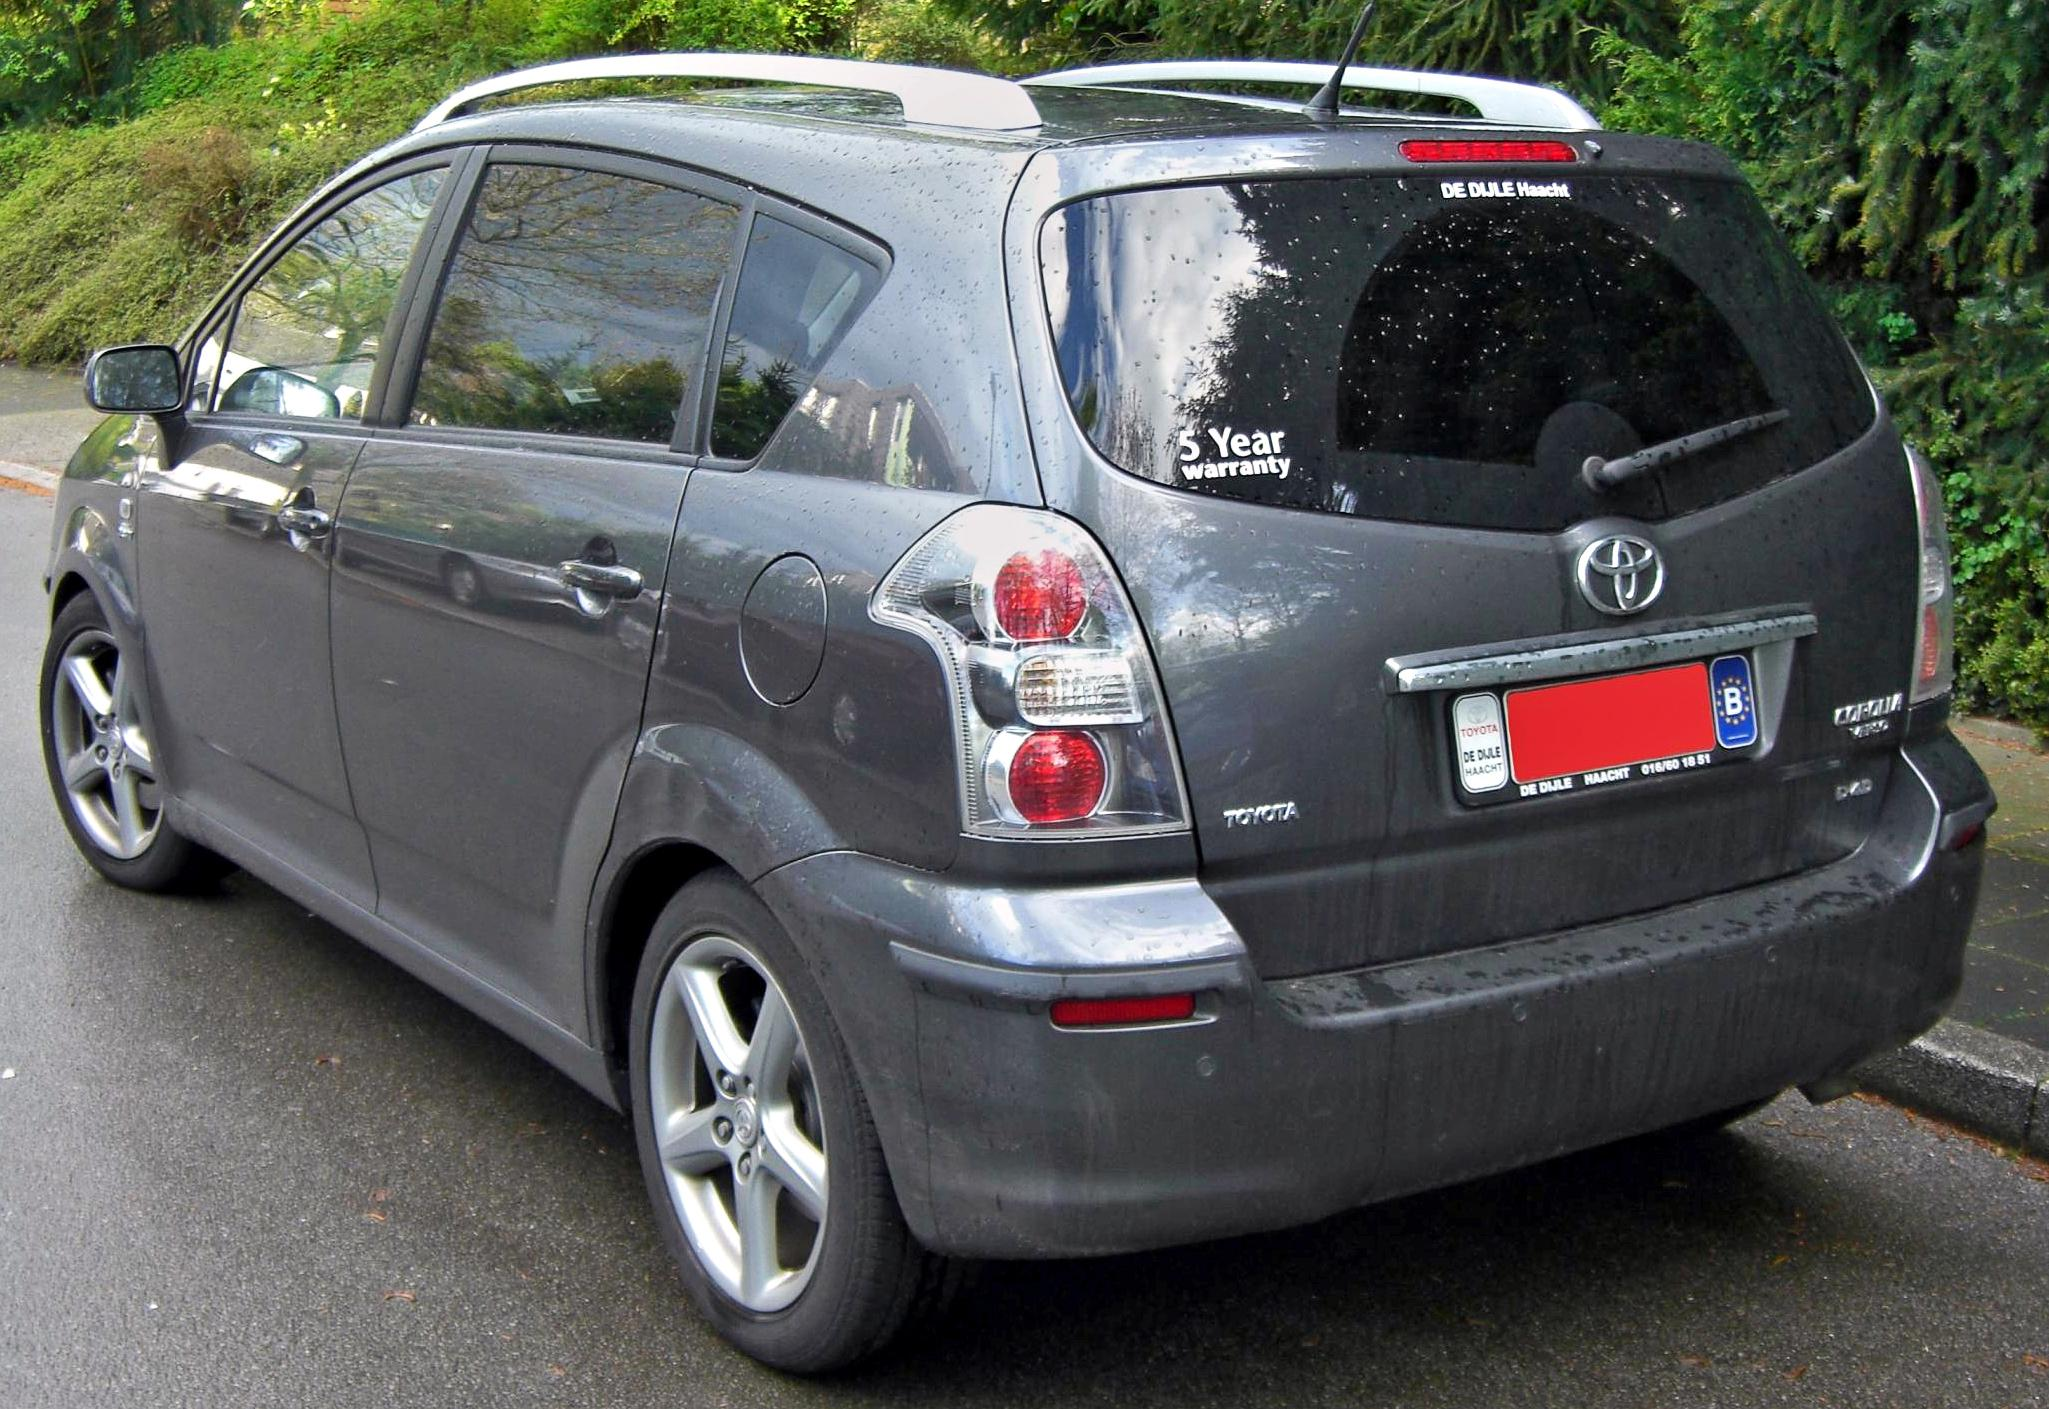 File:Toyota Corolla Verso rear.jpg  Wikimedia Commons